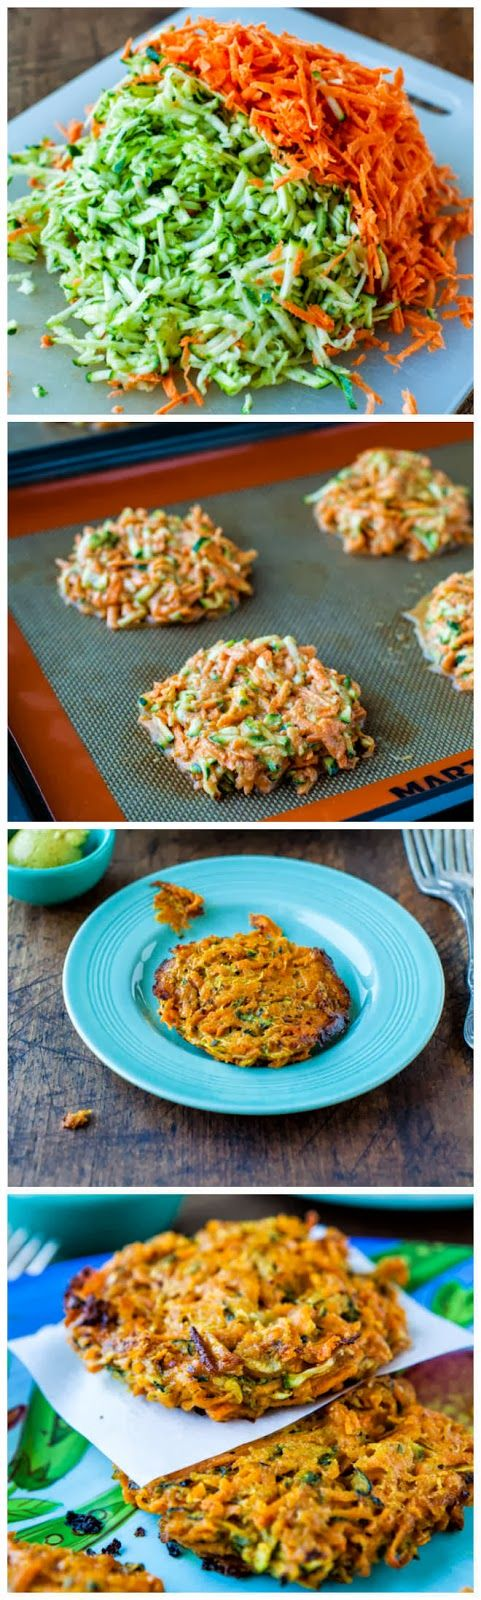 Latest Food: Baked Chipotle Sweet Potato and Zucchini Fritters